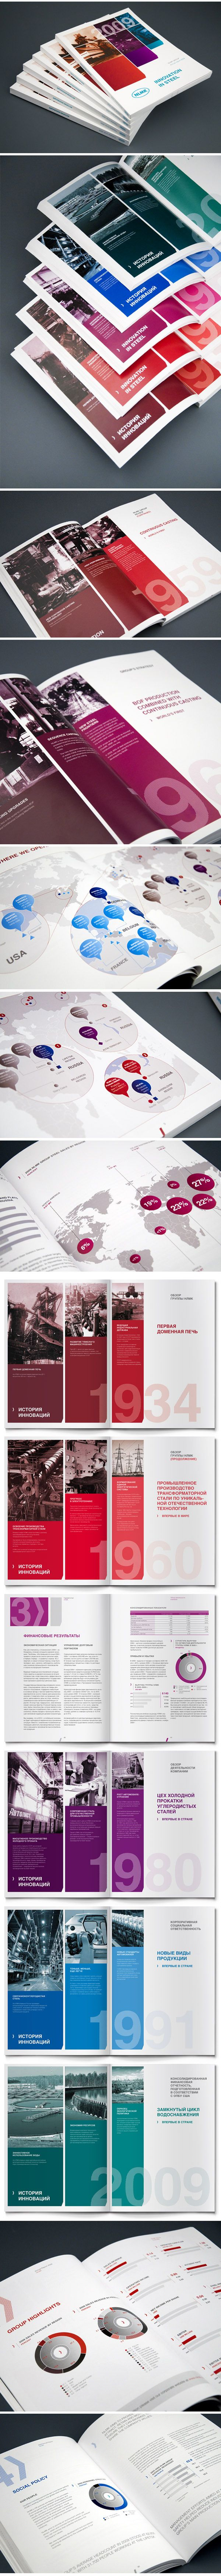 annual report NLMK on the Behance Network